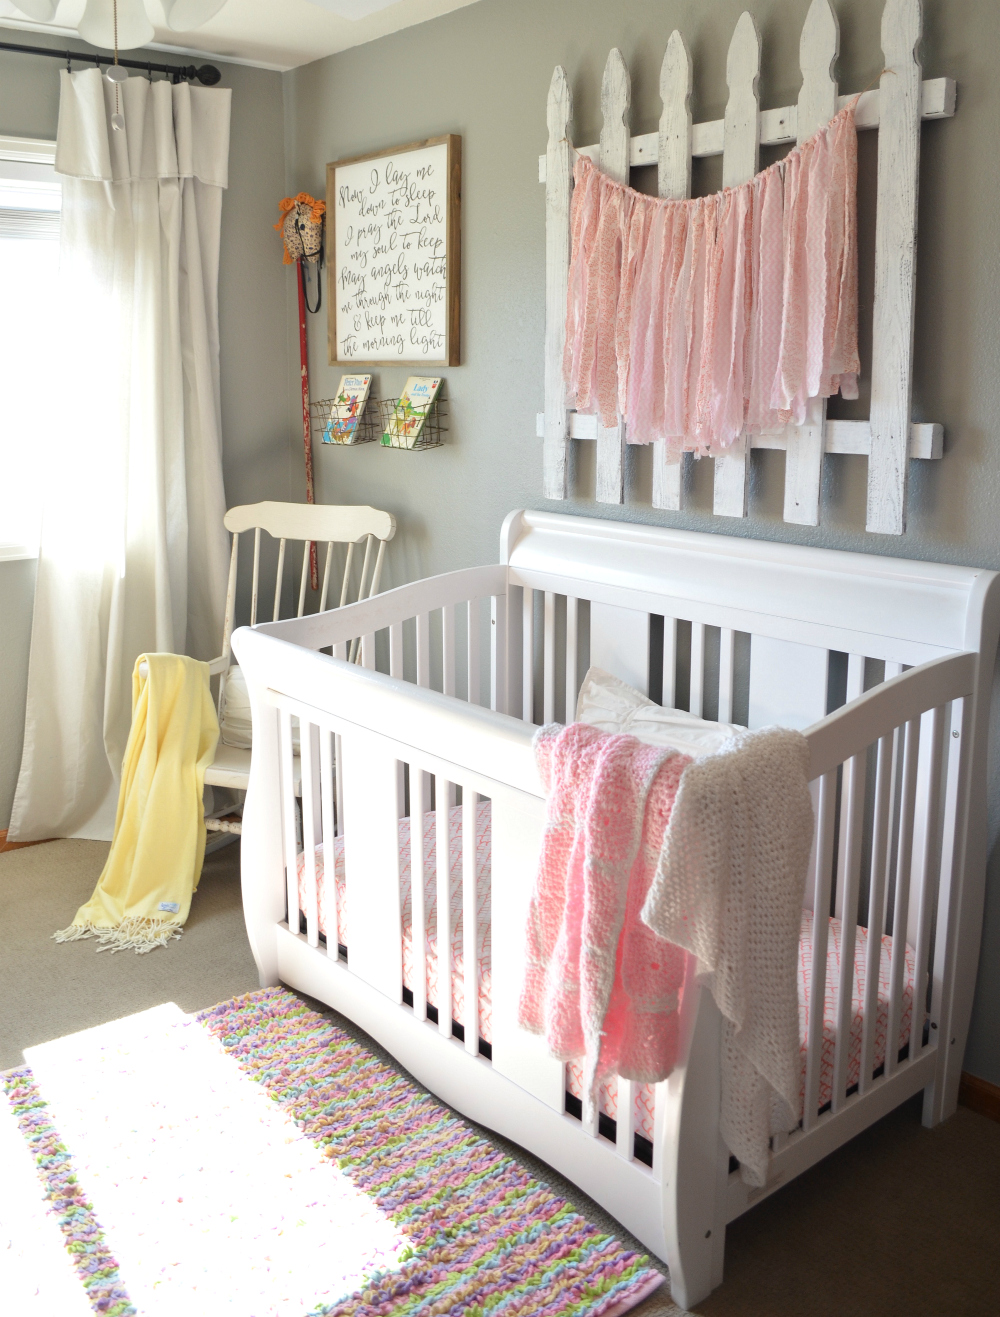 Baby Room For Girl. Vintage Farmhouse Nursery Baby Room For Girl